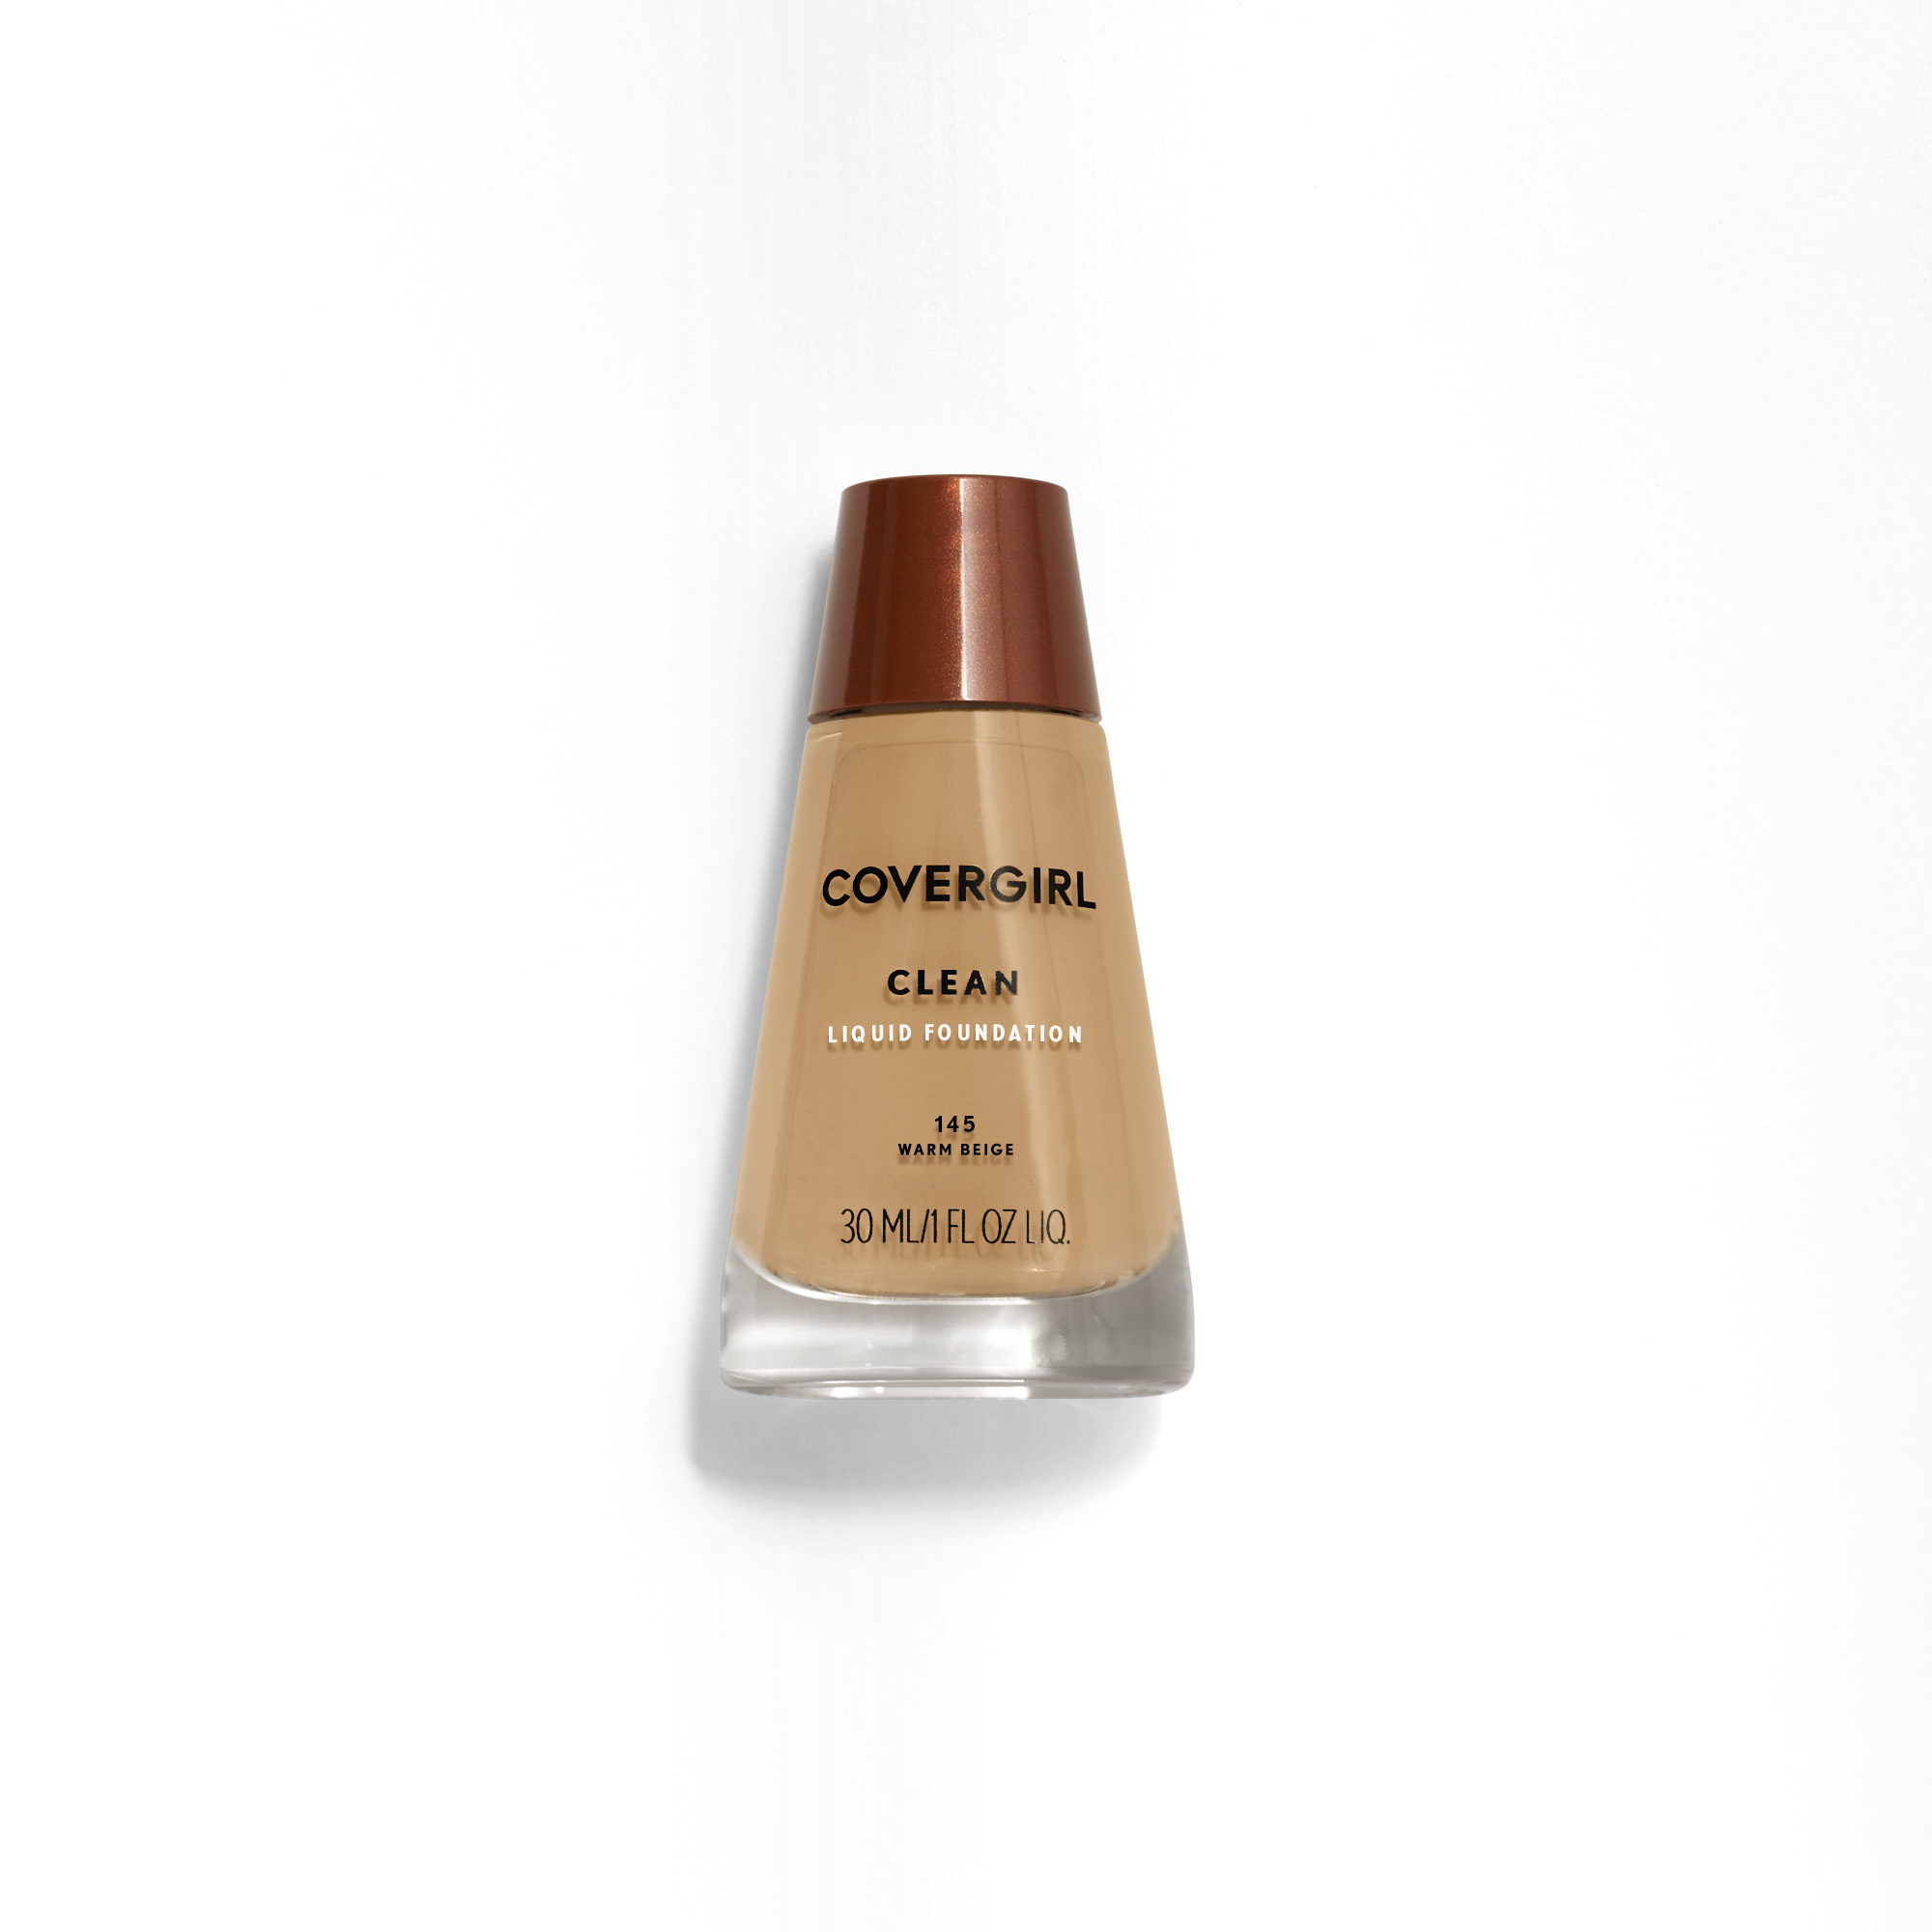 COVERGIRL Clean Liquid Foundation, 145 Warm Beige